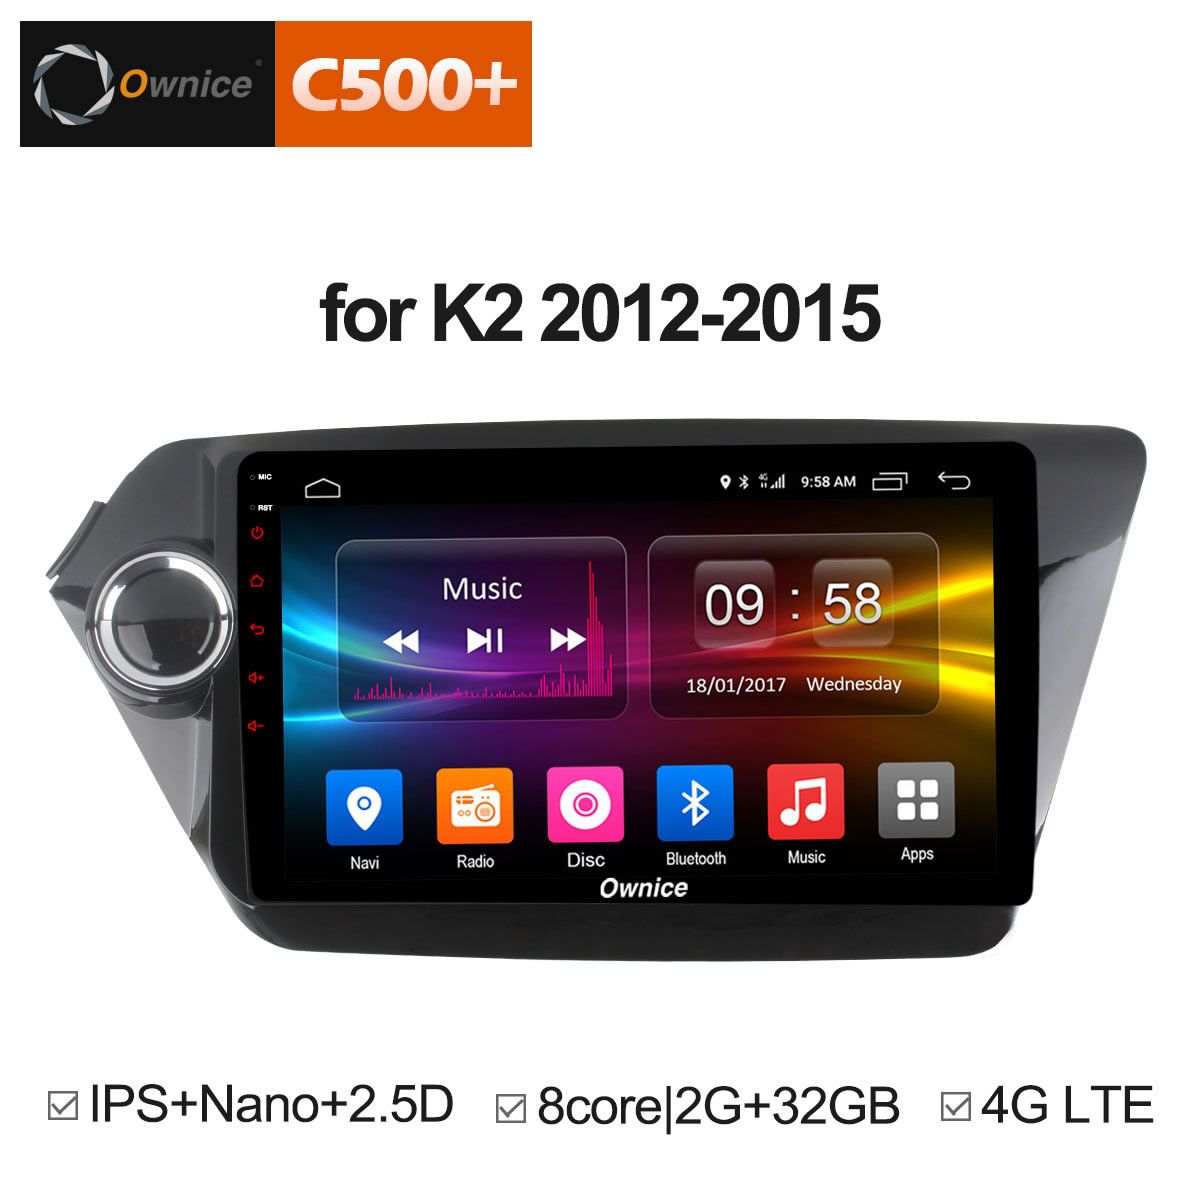 Ownice C500+ G10 Android 8.1 Octa 8 Core car radio player GPS navi for Kia k2 RIO 2012 2013 2014 2015 with 2G RAM Support 4G LTE